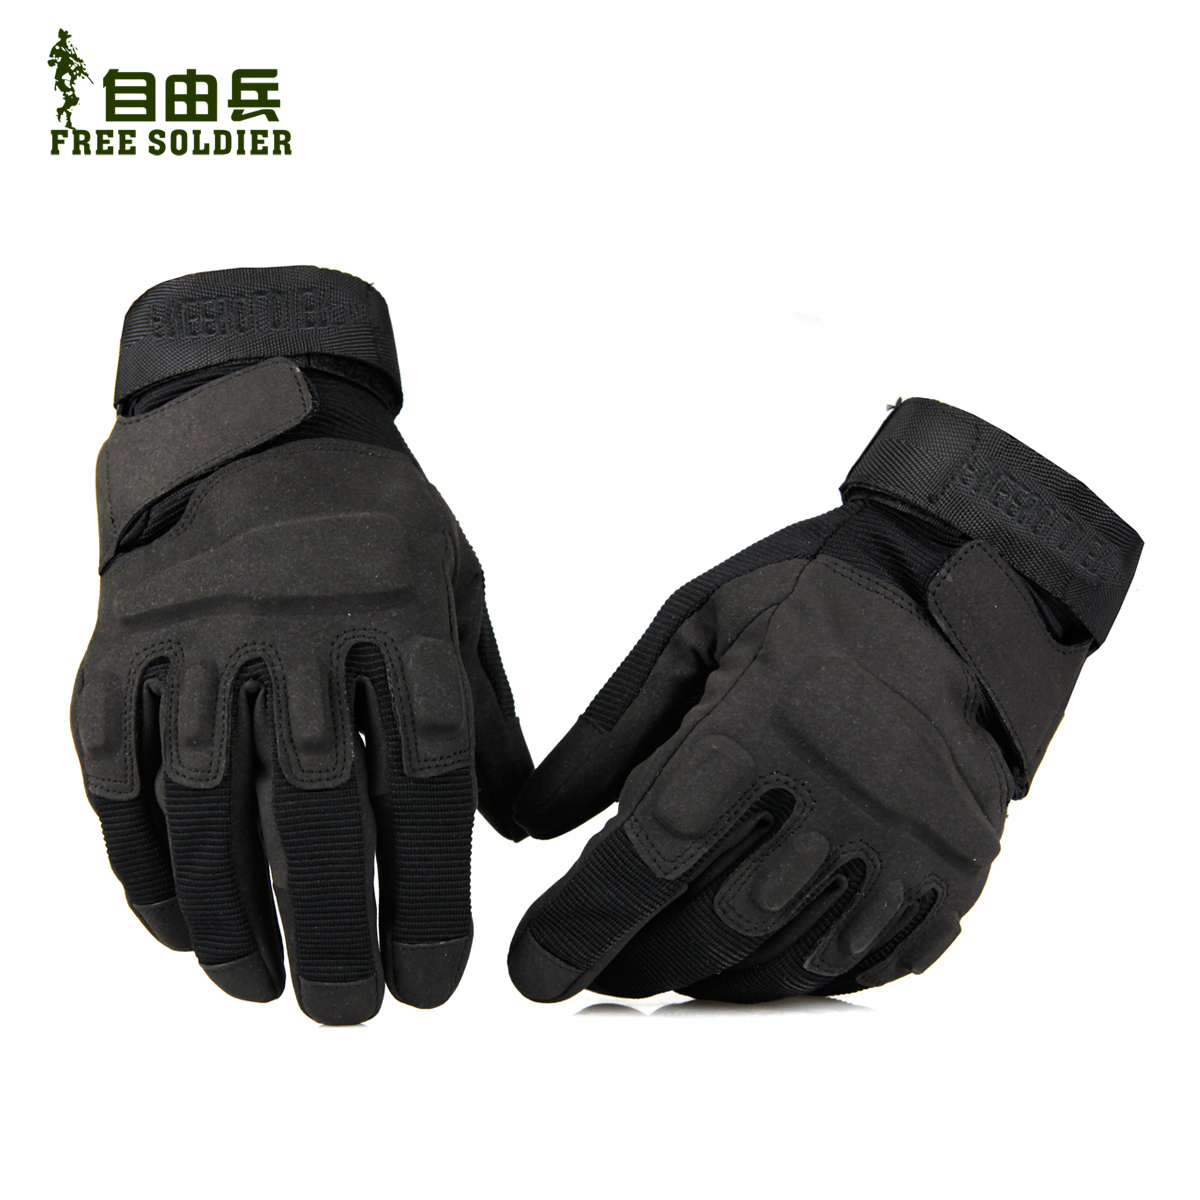 Free outdoor Black Hawk tactical gloves Black Hawk army hell storm fans total finger gloves